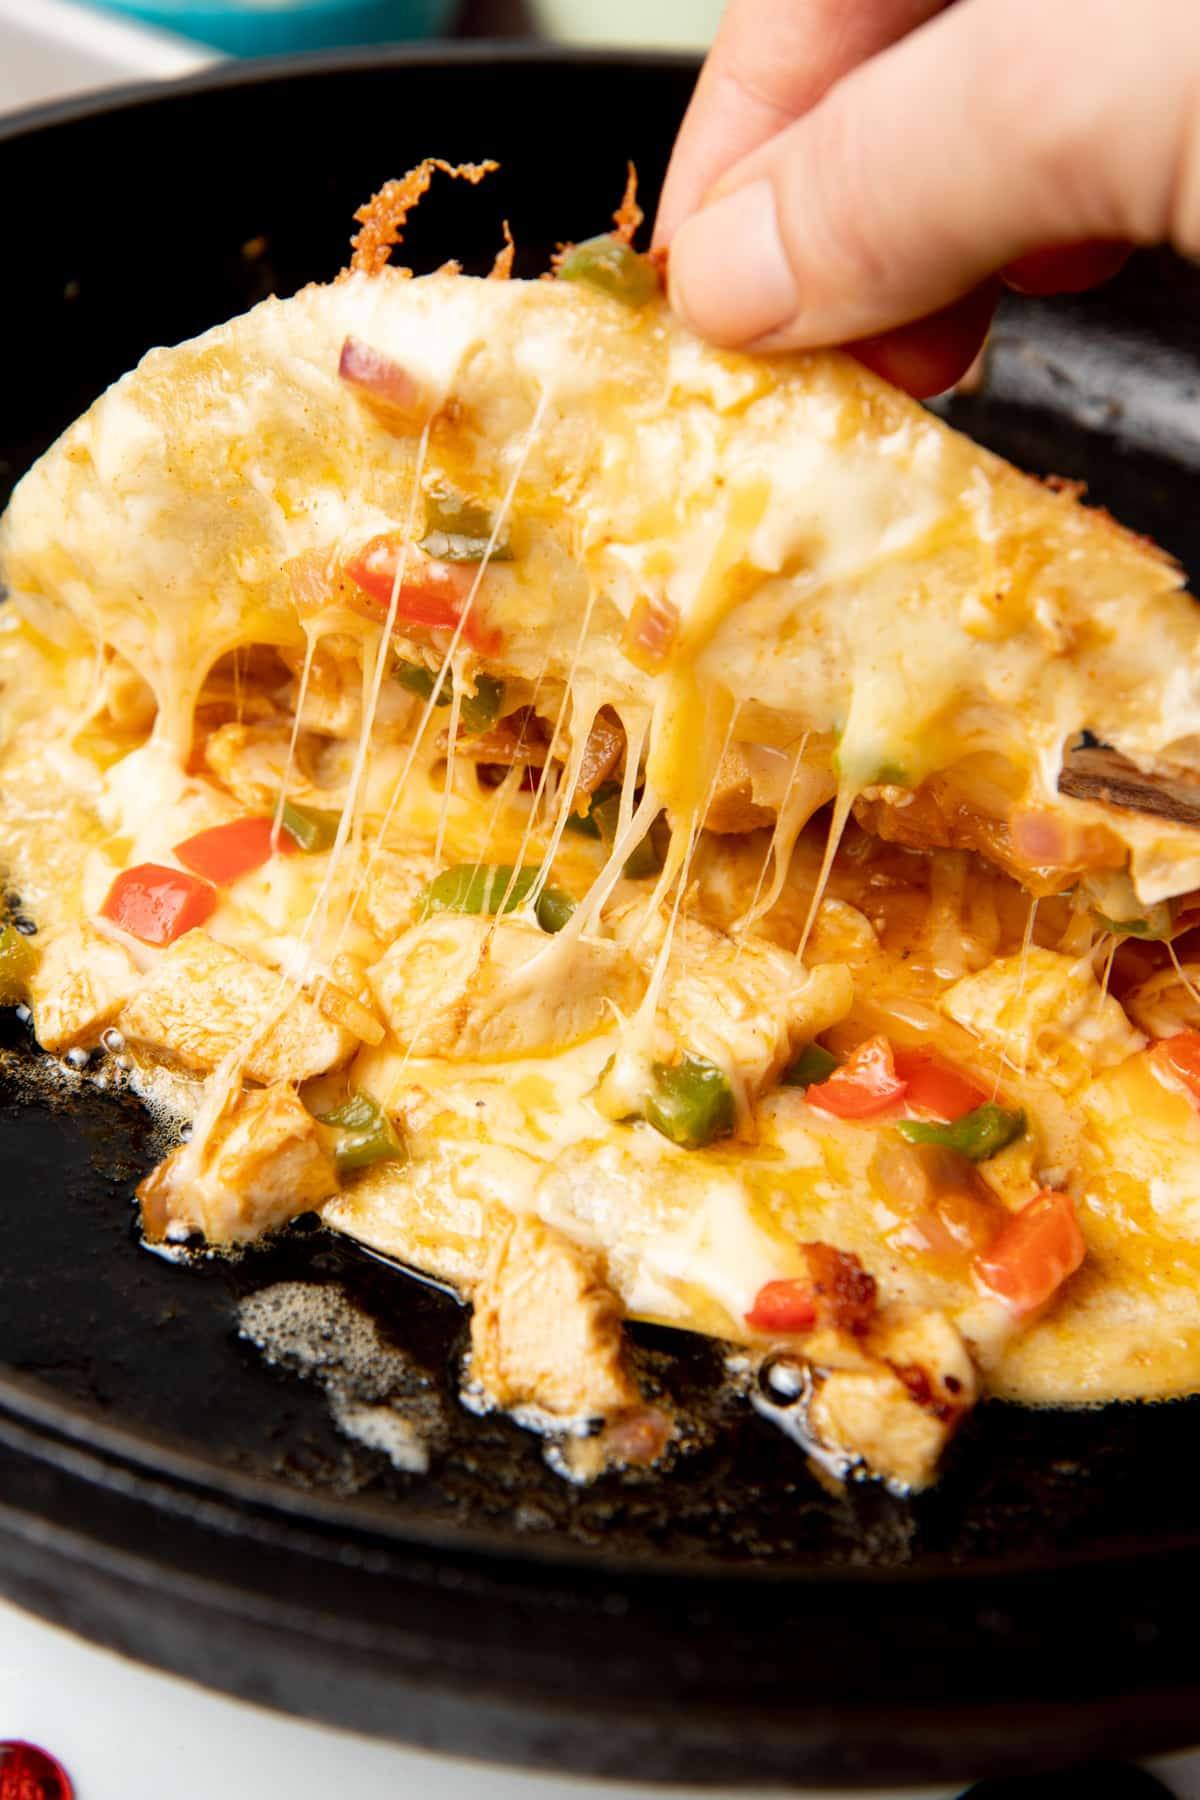 A hand lifts the top of a folded quesadilla. Chicken, peppers, and cheese are inside.